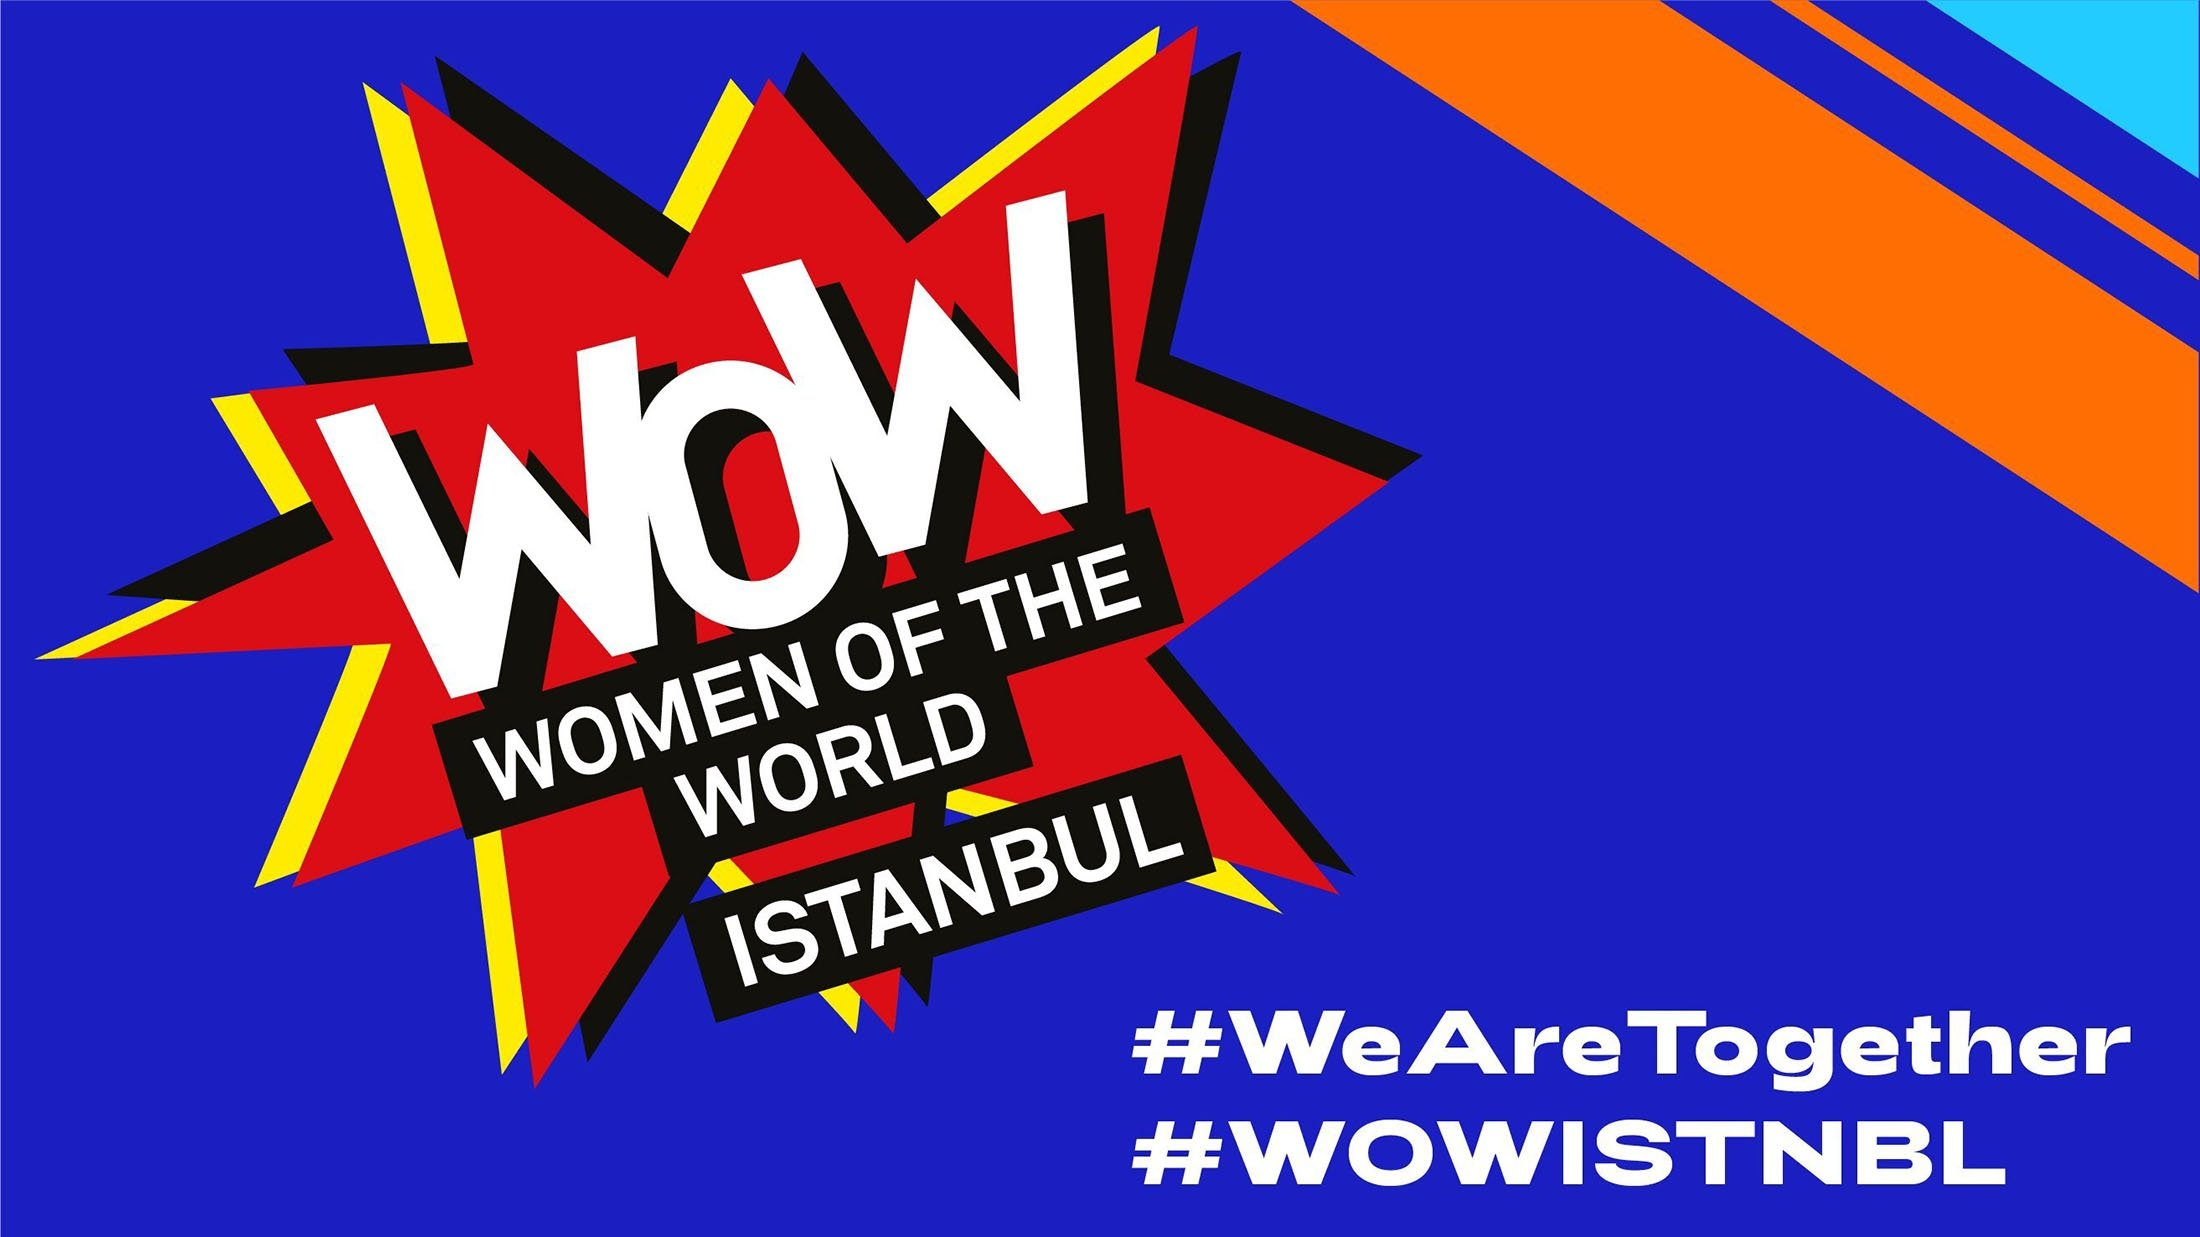 The Women of the World Festival Istanbul will be held digitally in March 2021. (Photo credit: British Council Turkey)